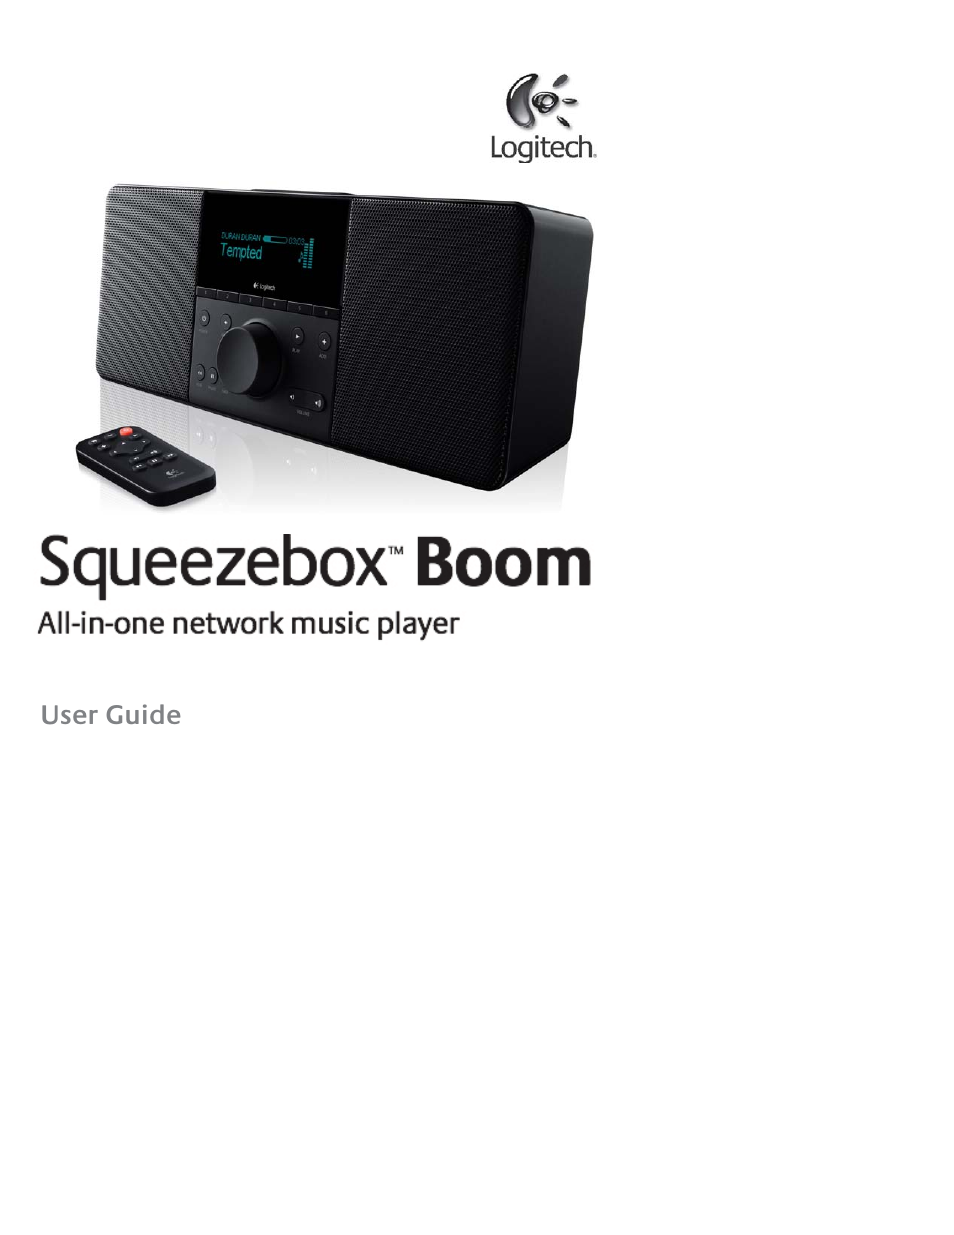 logitech squeezebox boom user manual 44 pages rh manualsdir com Squeezebox Instrument Squeezebox Instrument